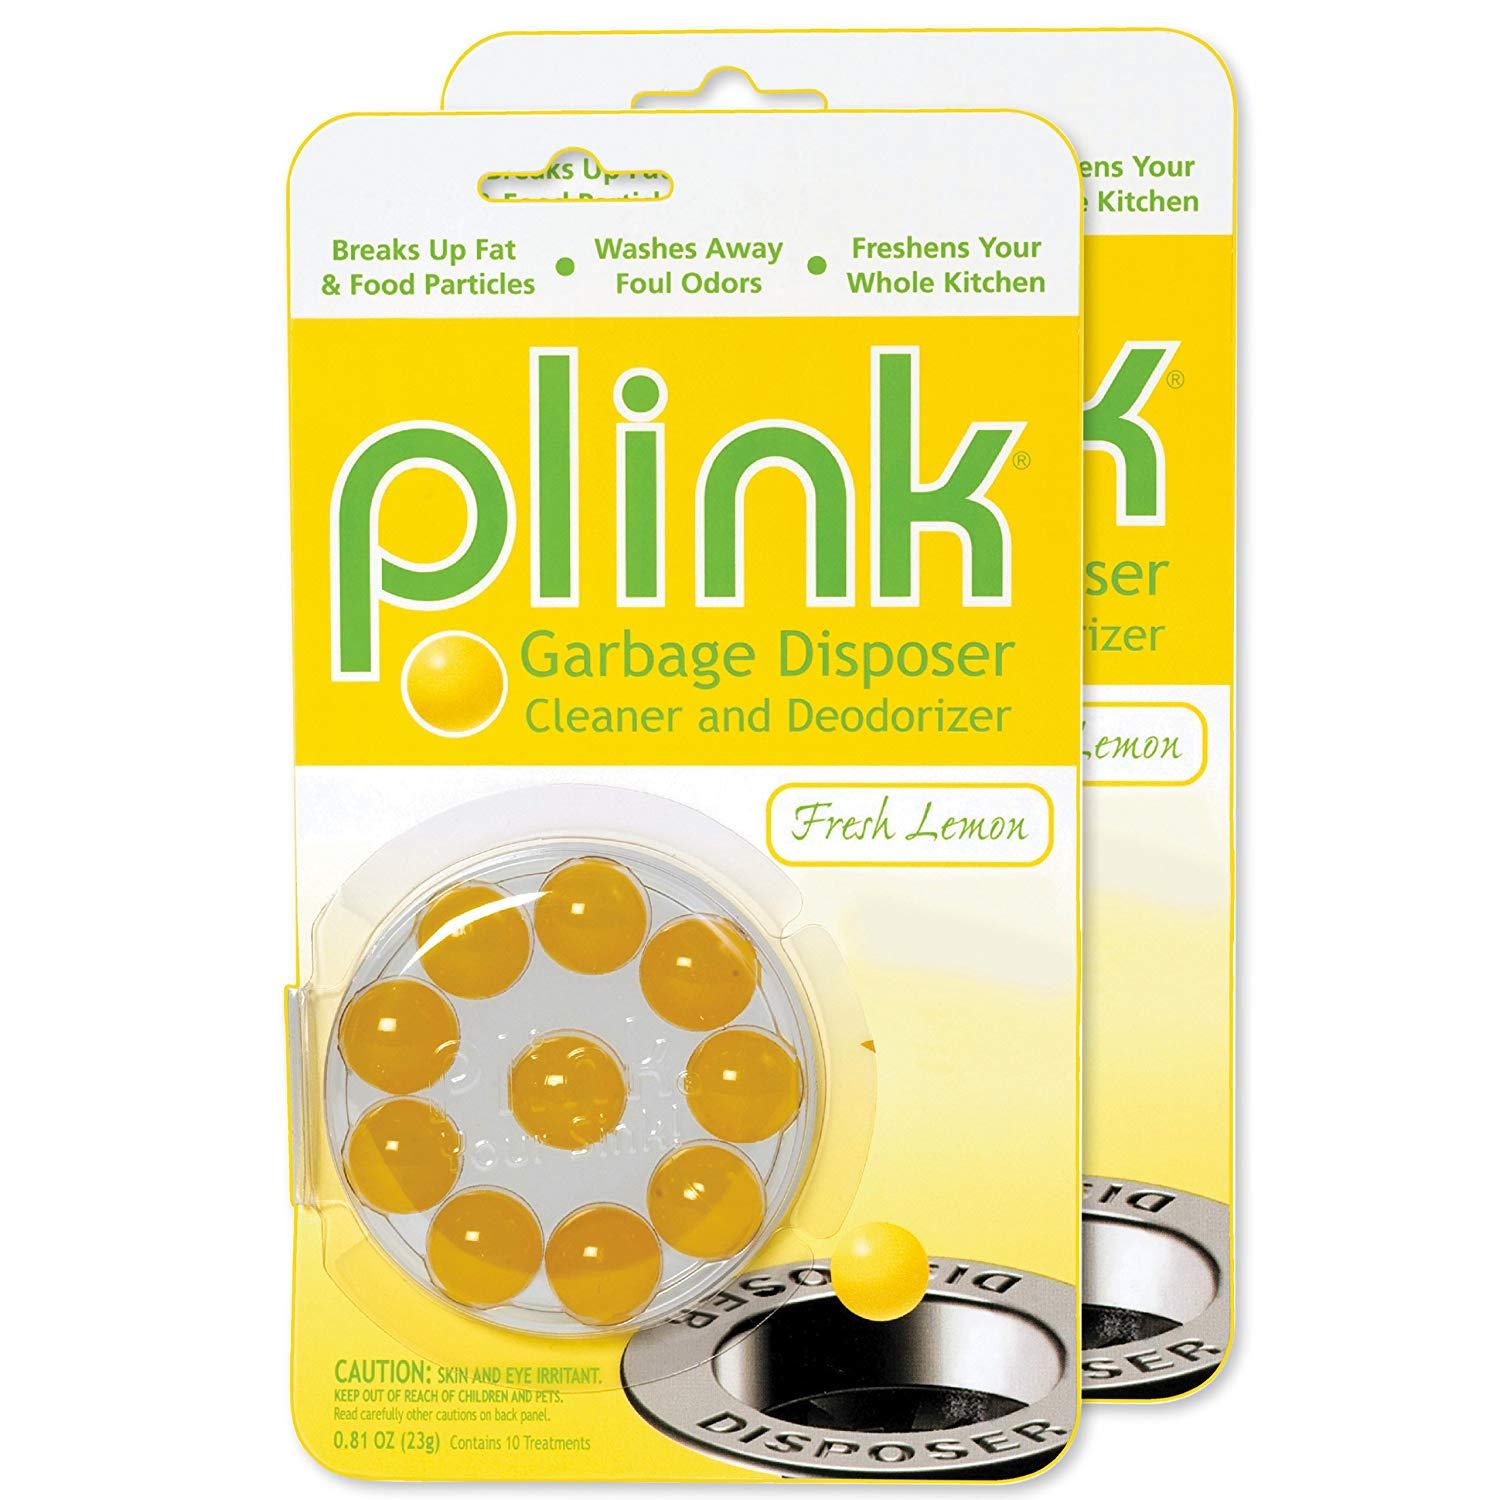 Garbage Disposal Cleaner and Deodorizer, Original Fresh Lemon Scent, Value 2-Pack for 20 Cleanings, Plink balls clean and deodorize kitchen sink.., By Plink